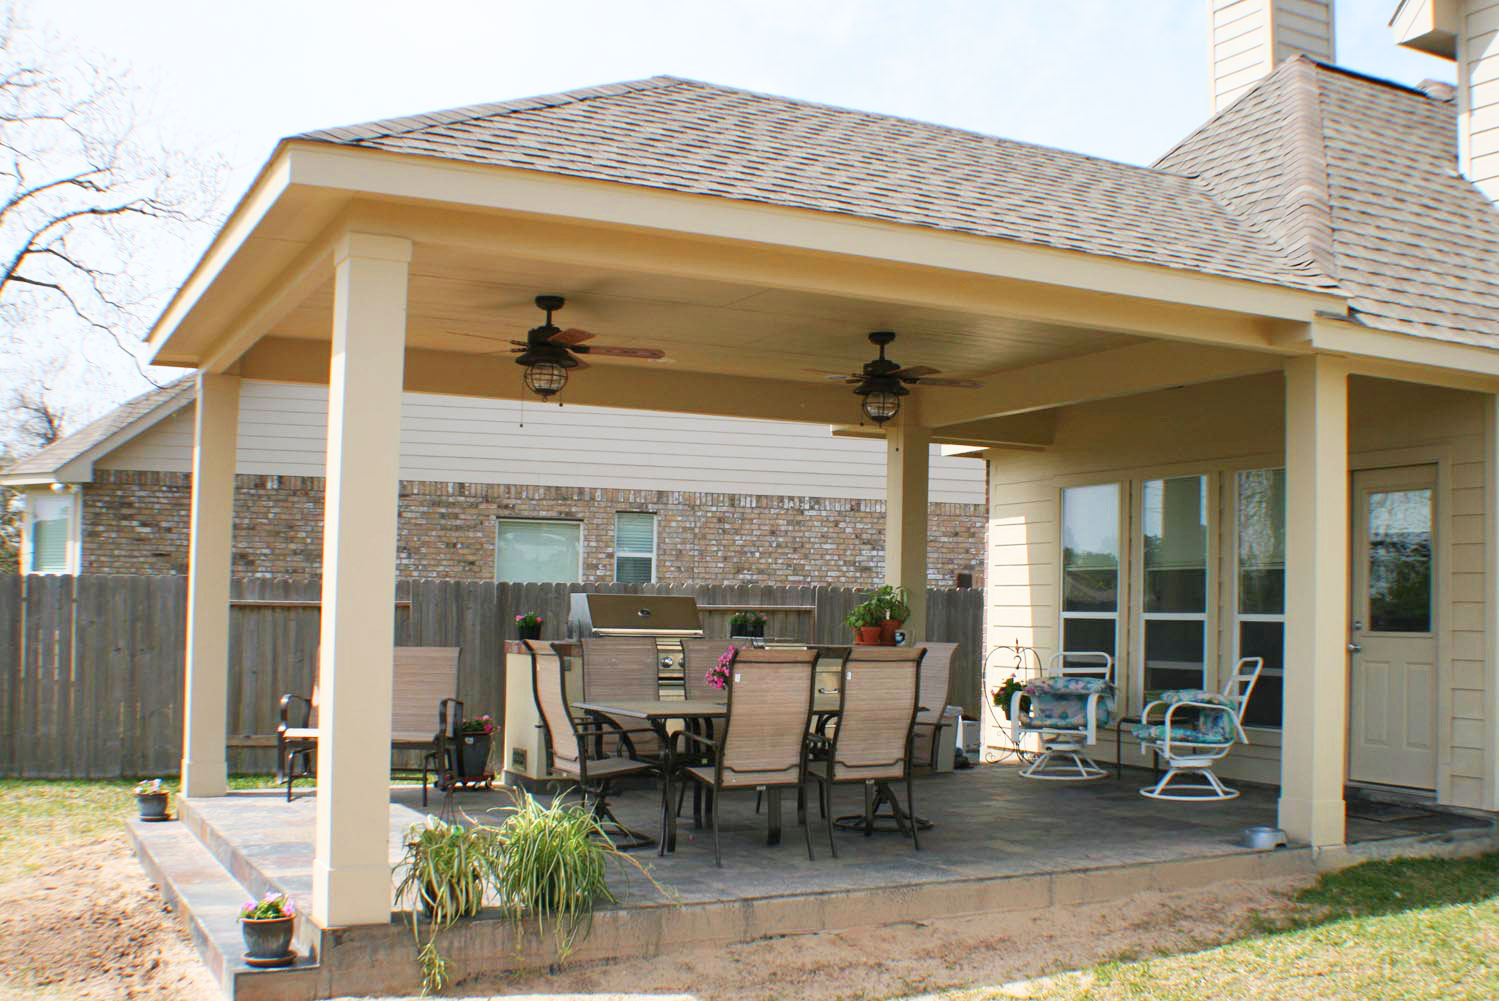 16 by 20 Patio Cover + Outdoor Kitchen - HHI Patio Covers on Backyard Patio Cover Ideas  id=11828